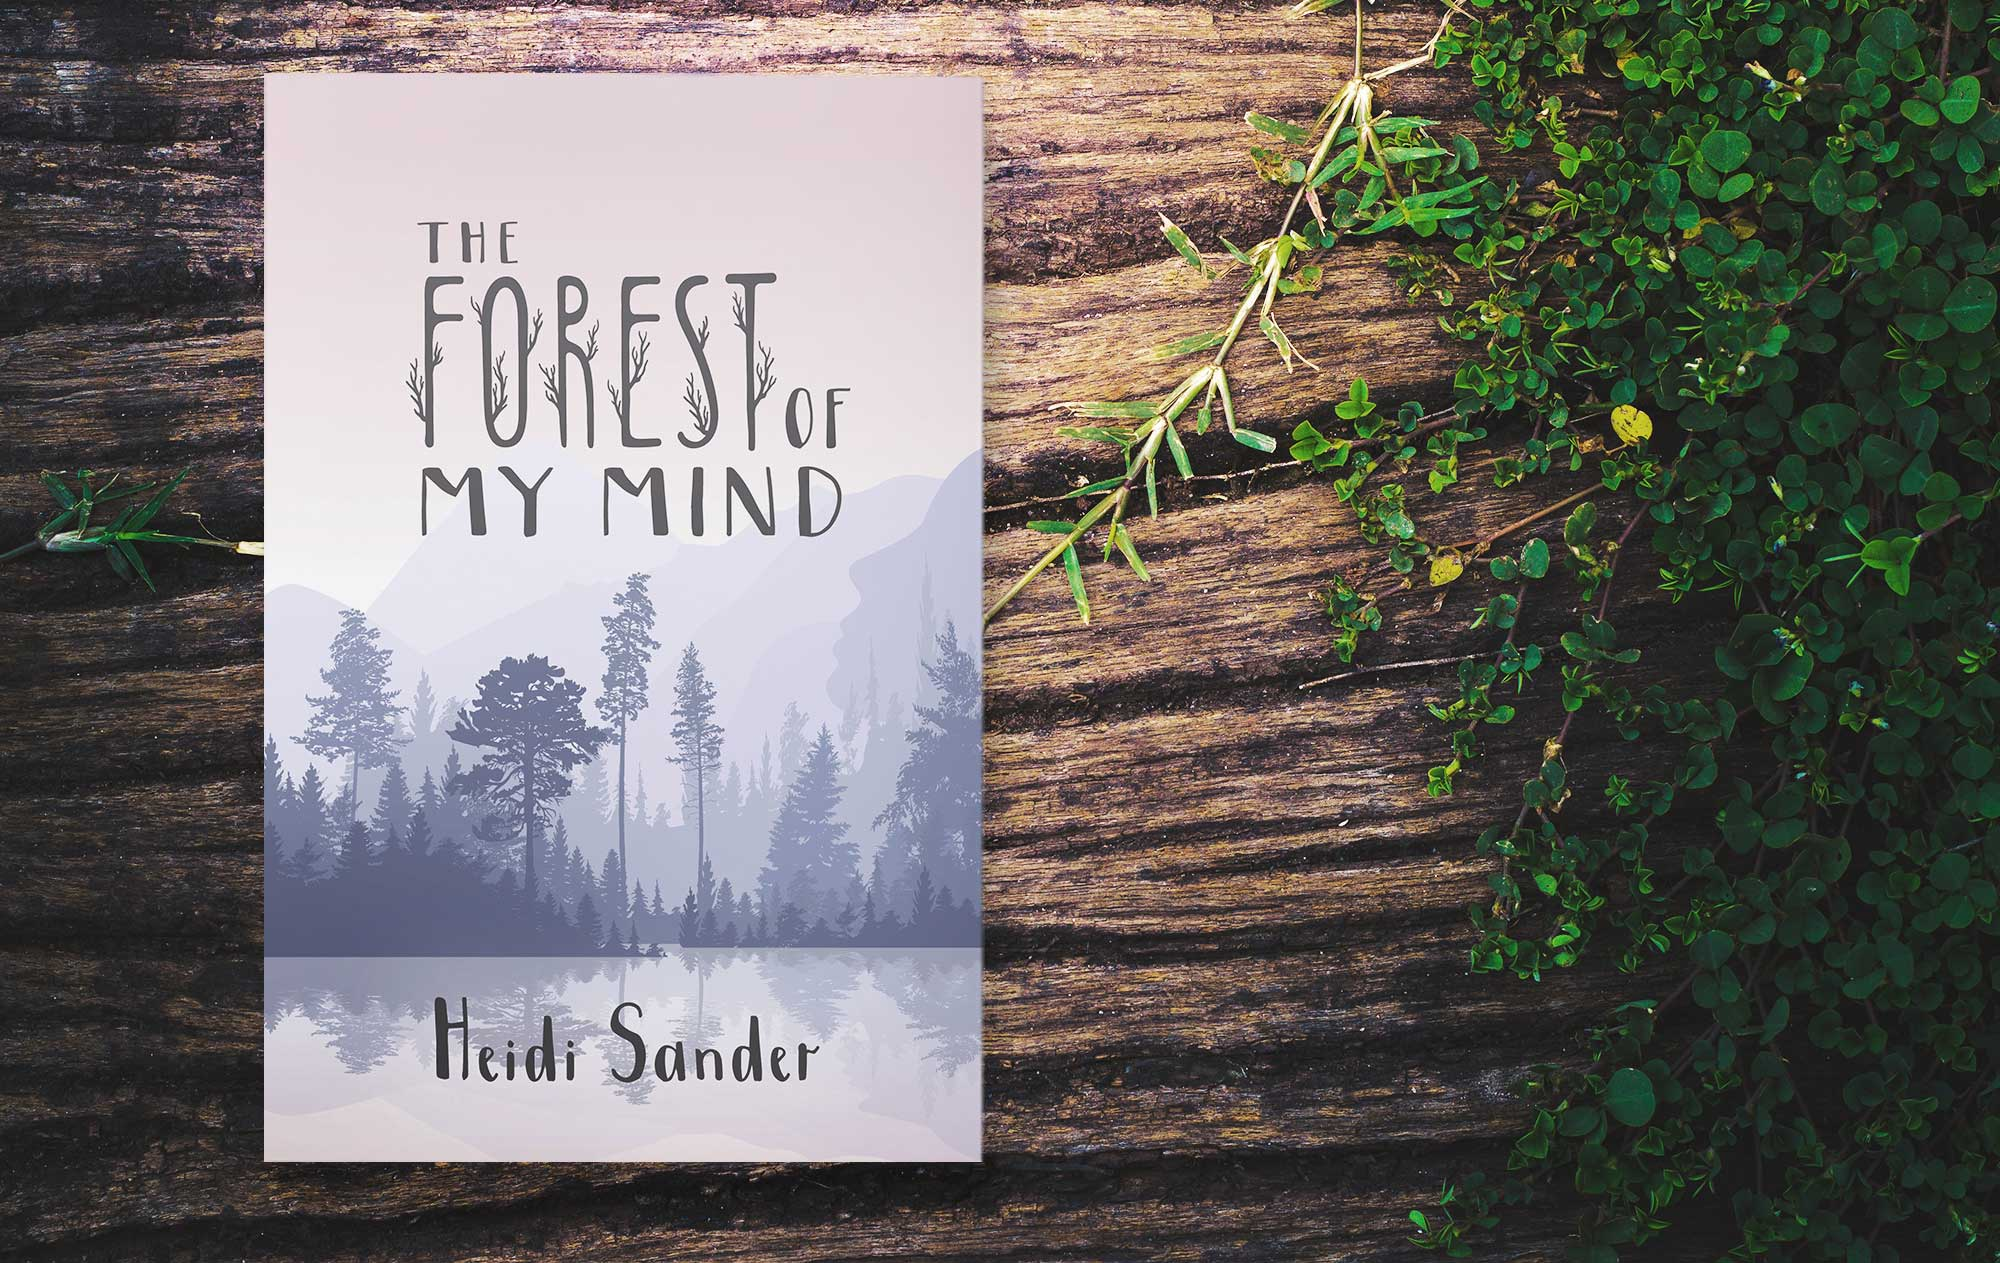 The Forest Of My Mind by Heidi Sander